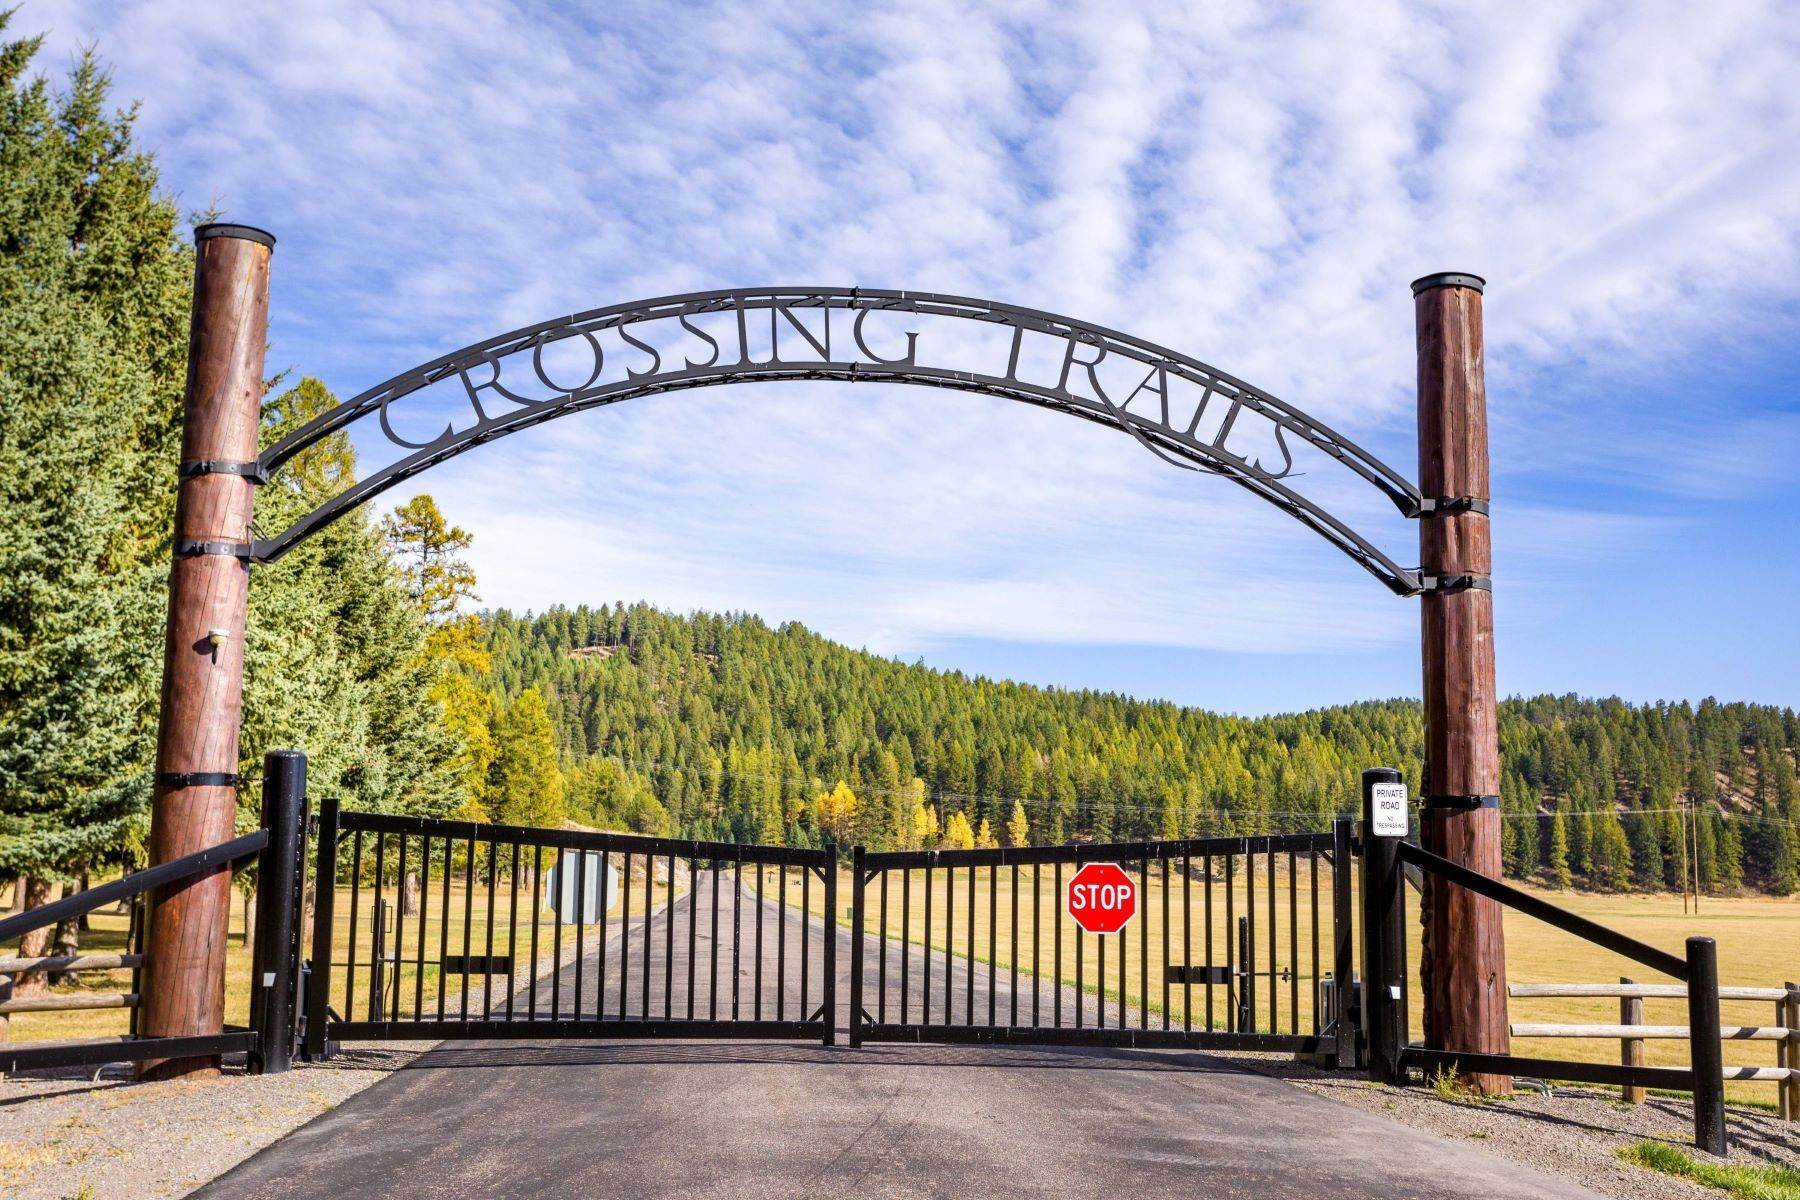 Land for Sale at Northwest Montana Forest, Meadows and Ponds 295 Garland Lane Whitefish, Montana 59937 United States